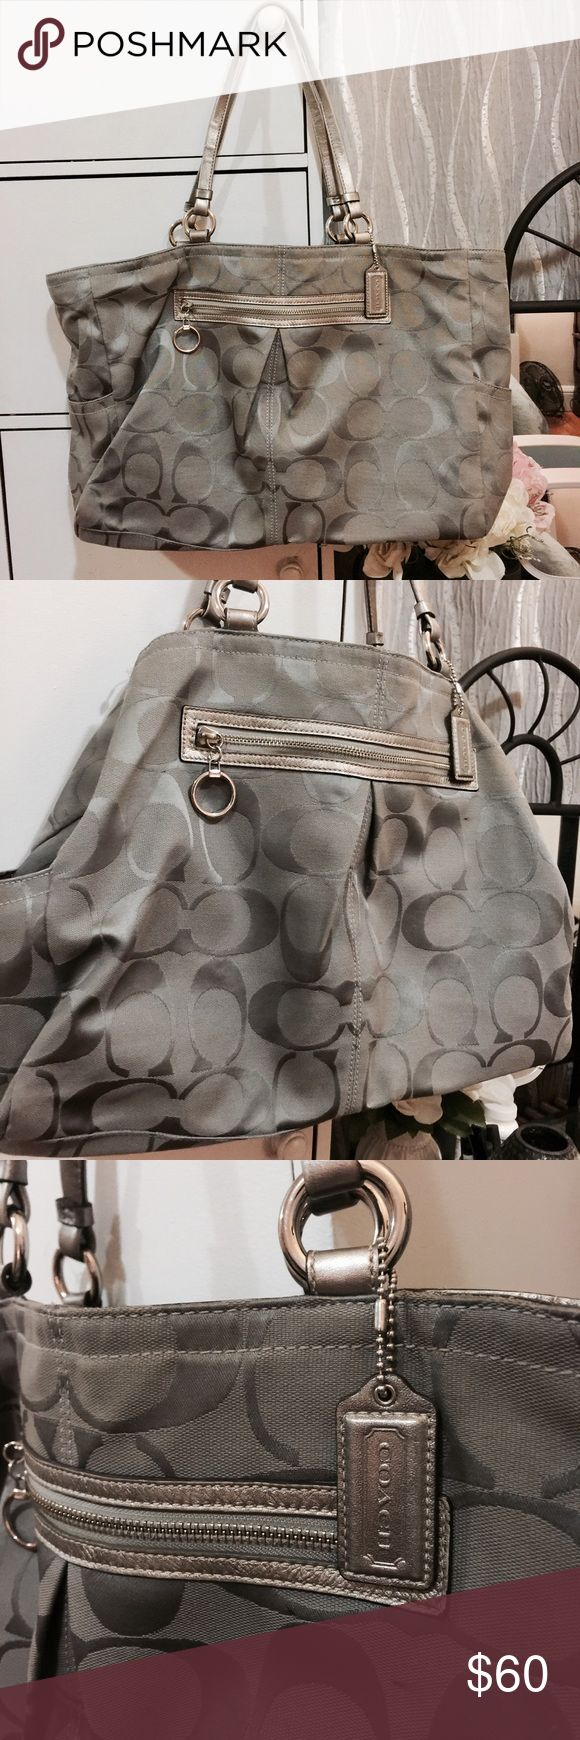 Coach silver tote bag 👜👜👜 Large tote bag with Purple lining perfect for traveling. Bag doesn't have a zipper just a clasp. I used to use for airport traveling. Coach Bags Totes